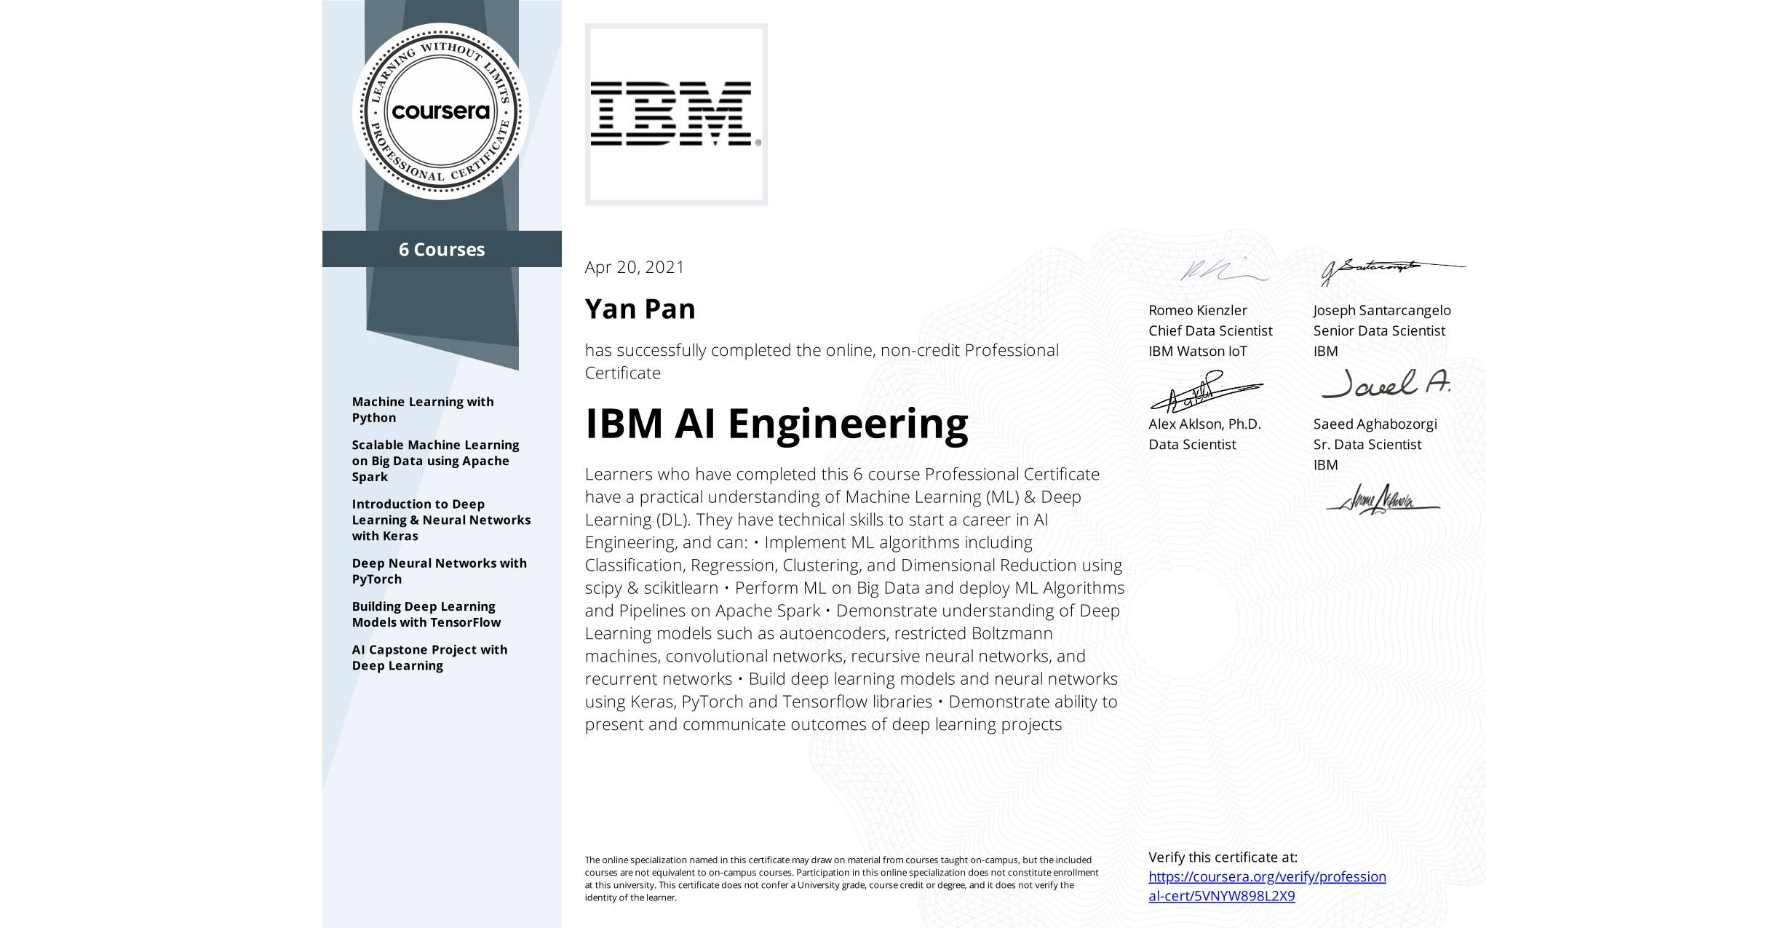 View certificate for Yan Pan, IBM AI Engineering, offered through Coursera. Learners who have completed this 6 course Professional Certificate have a practical understanding of Machine Learning (ML) & Deep Learning (DL). They have technical skills to start a career in AI Engineering, and can: •	Implement ML algorithms including Classification, Regression, Clustering, and Dimensional Reduction using scipy & scikitlearn •	Perform ML on Big Data and deploy ML Algorithms and Pipelines on Apache Spark •	Demonstrate understanding of Deep Learning models such as autoencoders, restricted Boltzmann machines,  convolutional networks, recursive neural networks, and recurrent networks •	Build deep learning models and neural networks using Keras, PyTorch and Tensorflow libraries •	Demonstrate ability to present and communicate outcomes of deep learning projects